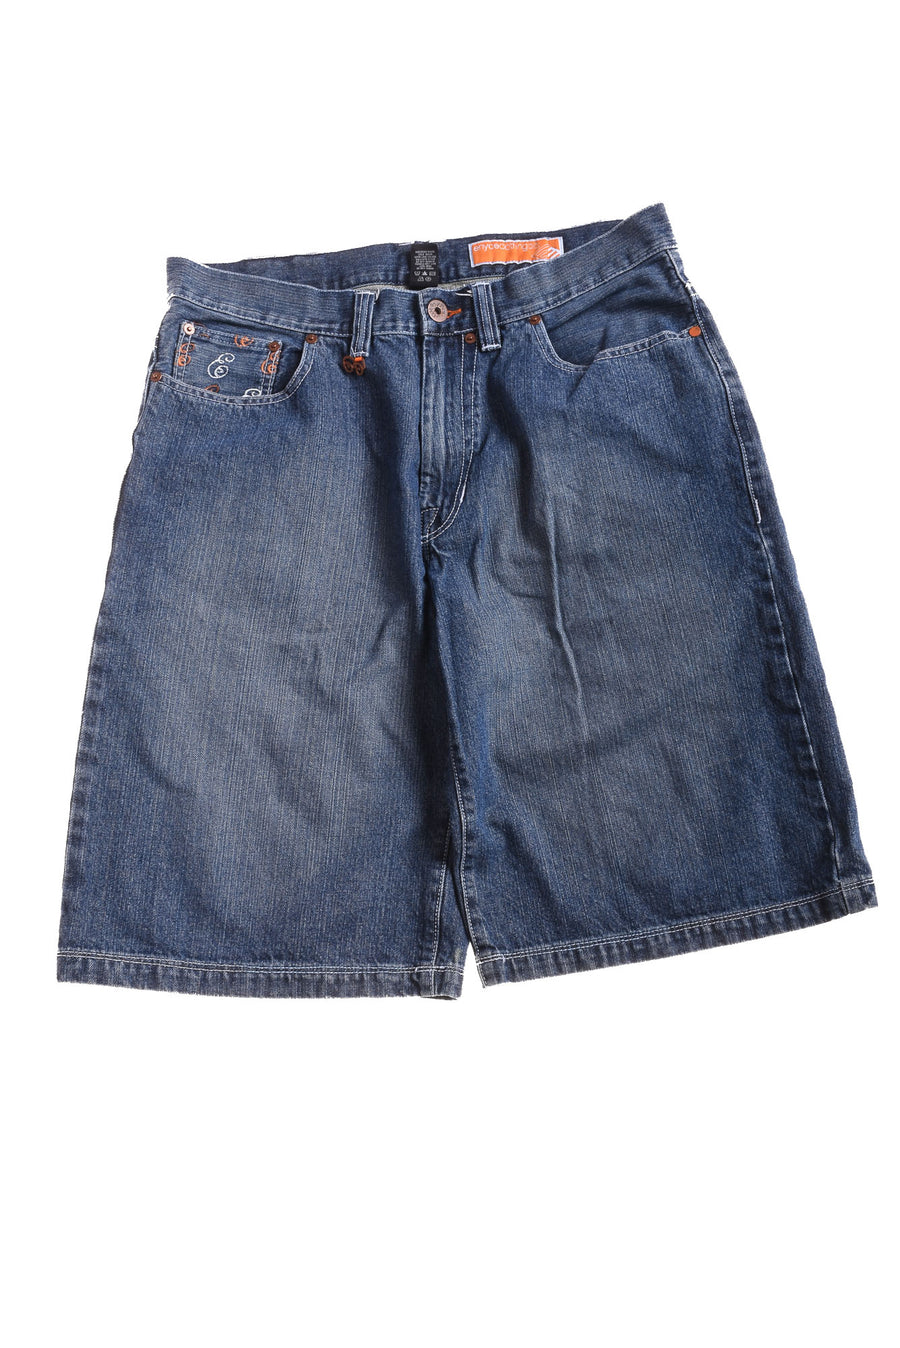 USED Enyce Men's Shorts 34 Blue